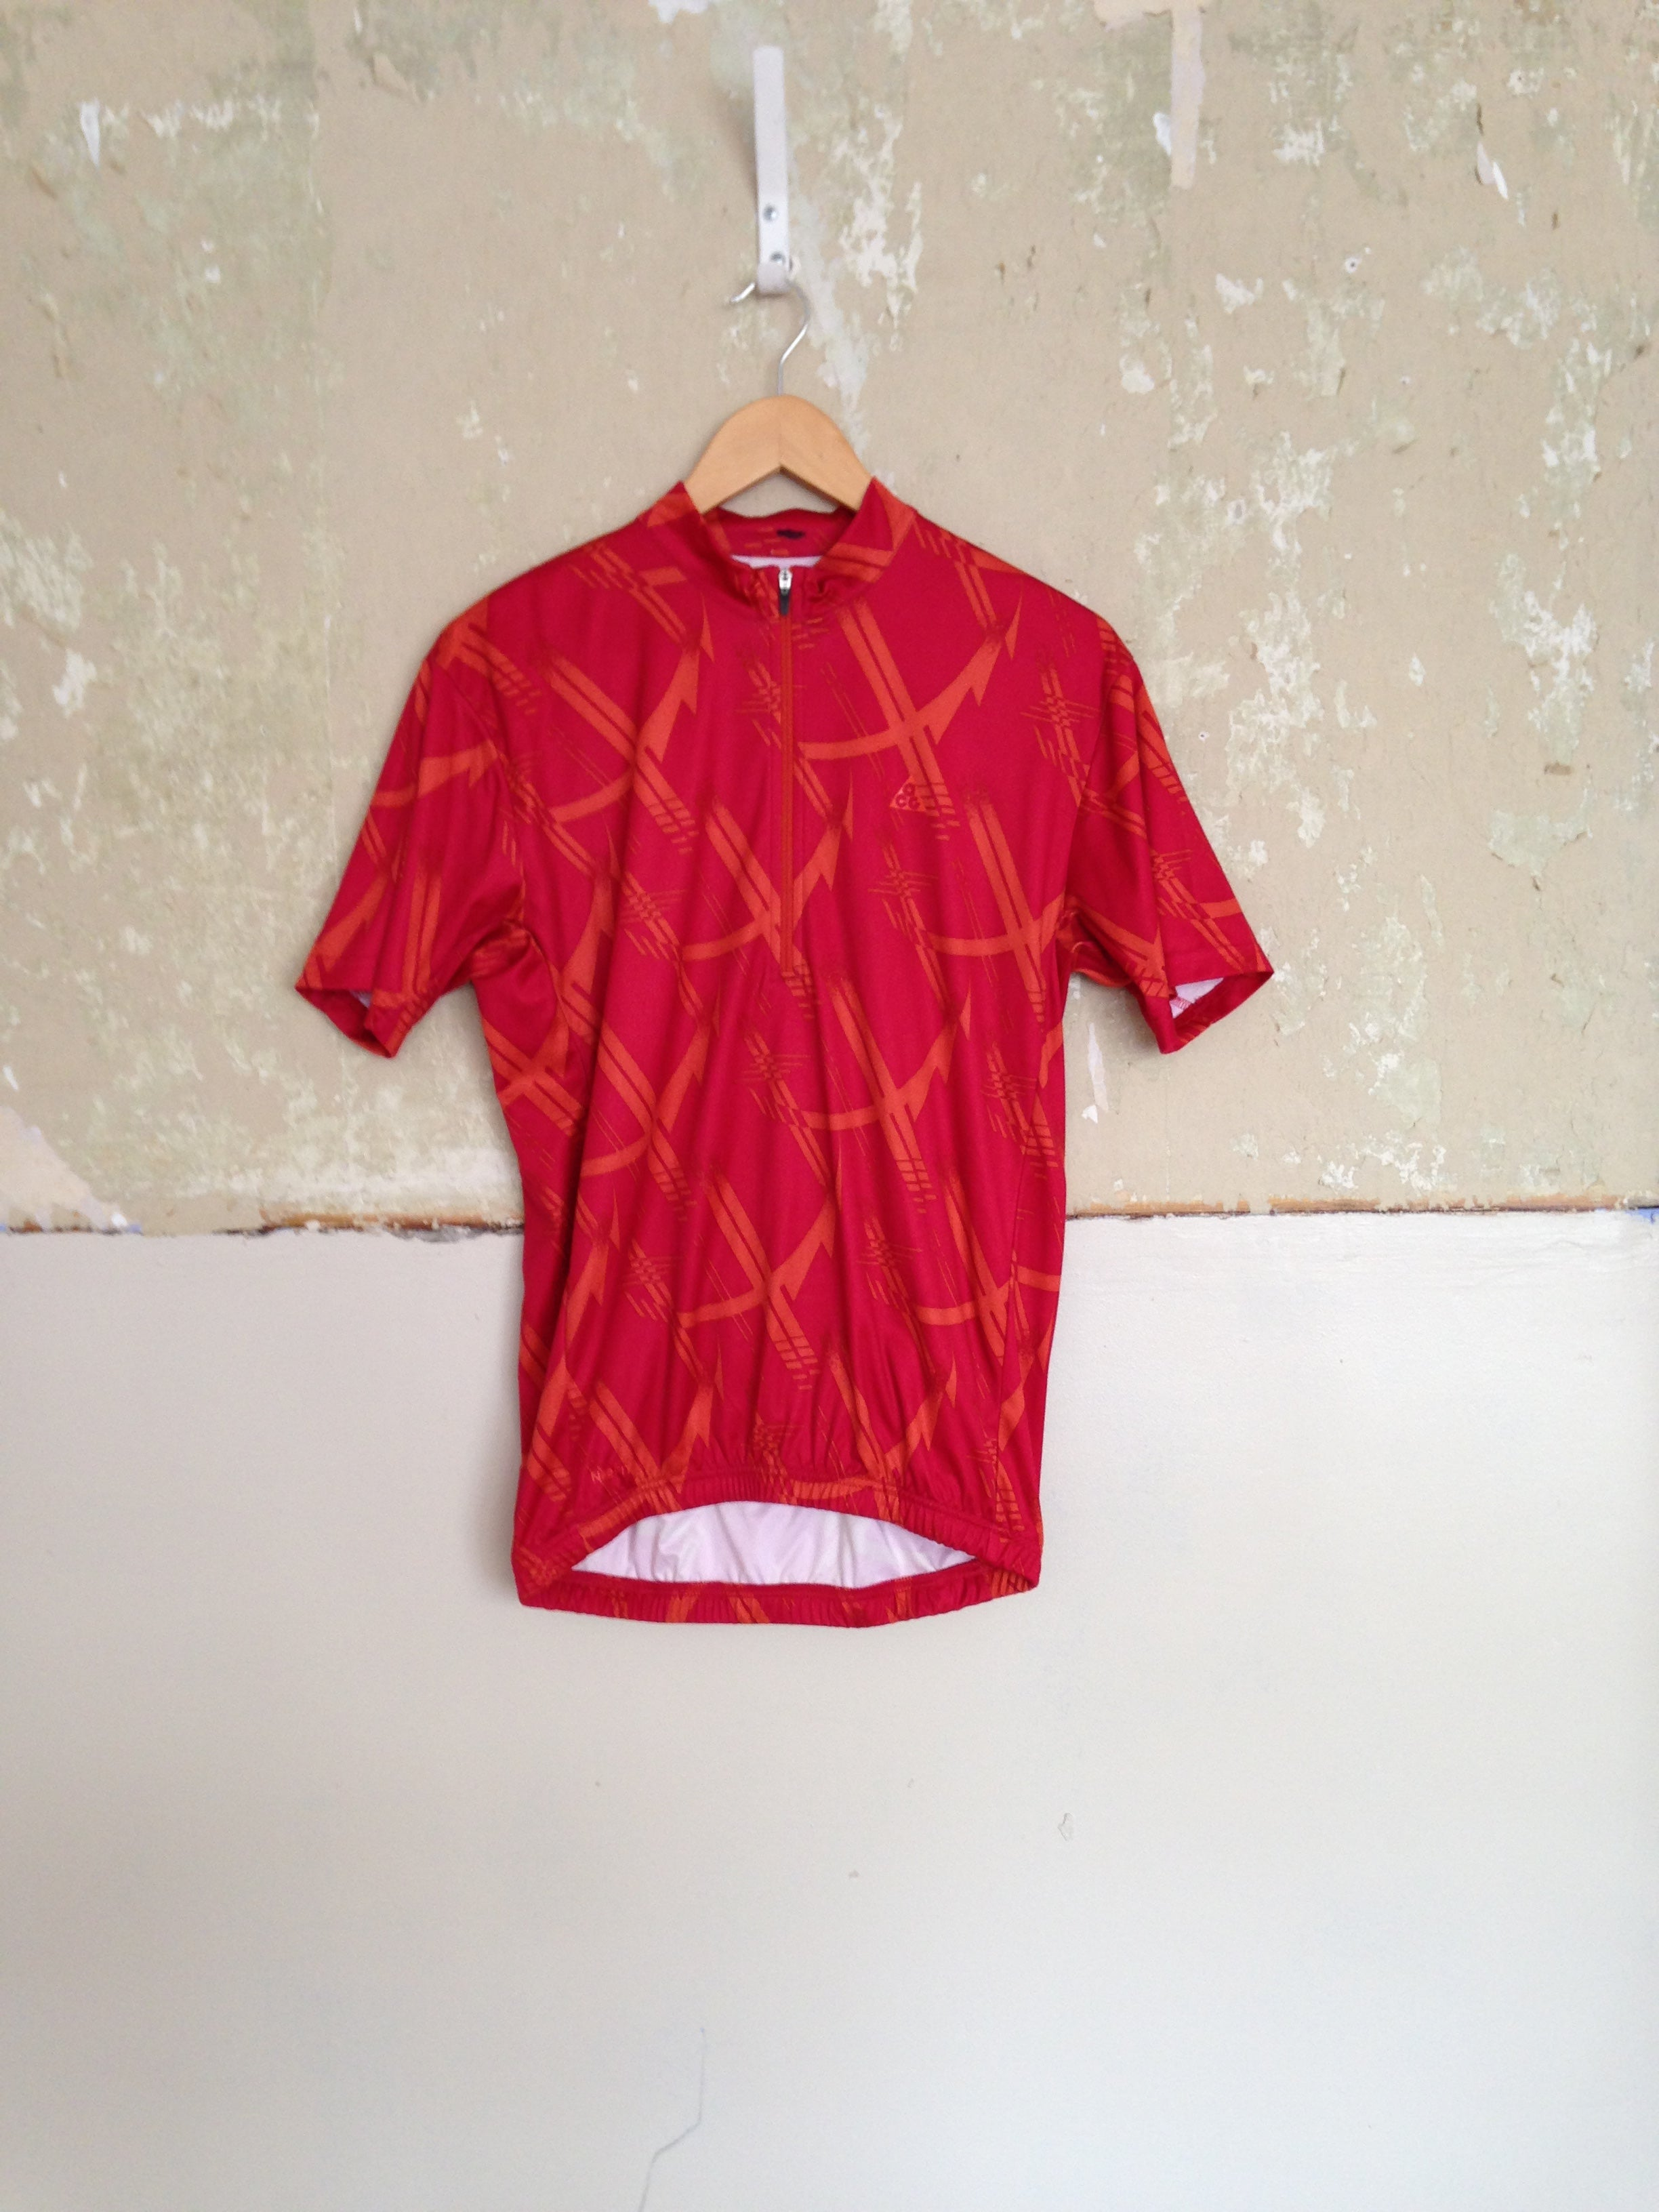 25d3f4eec NIKE ACG FITDRY CYCLING JERSEY SHIRT